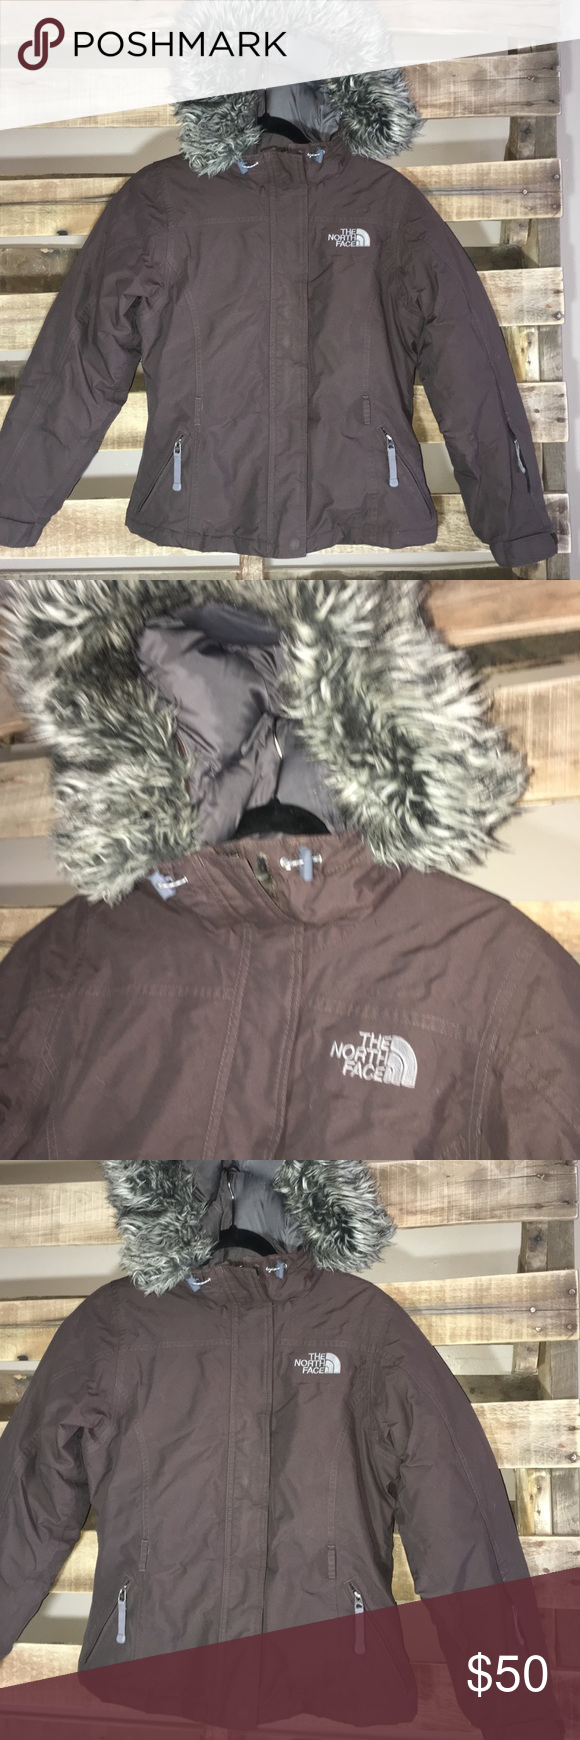 Women S The North Face Brown Puffer Parka Jacket Jackets Brown Puffer Puffer Parka Jacket [ 1740 x 580 Pixel ]